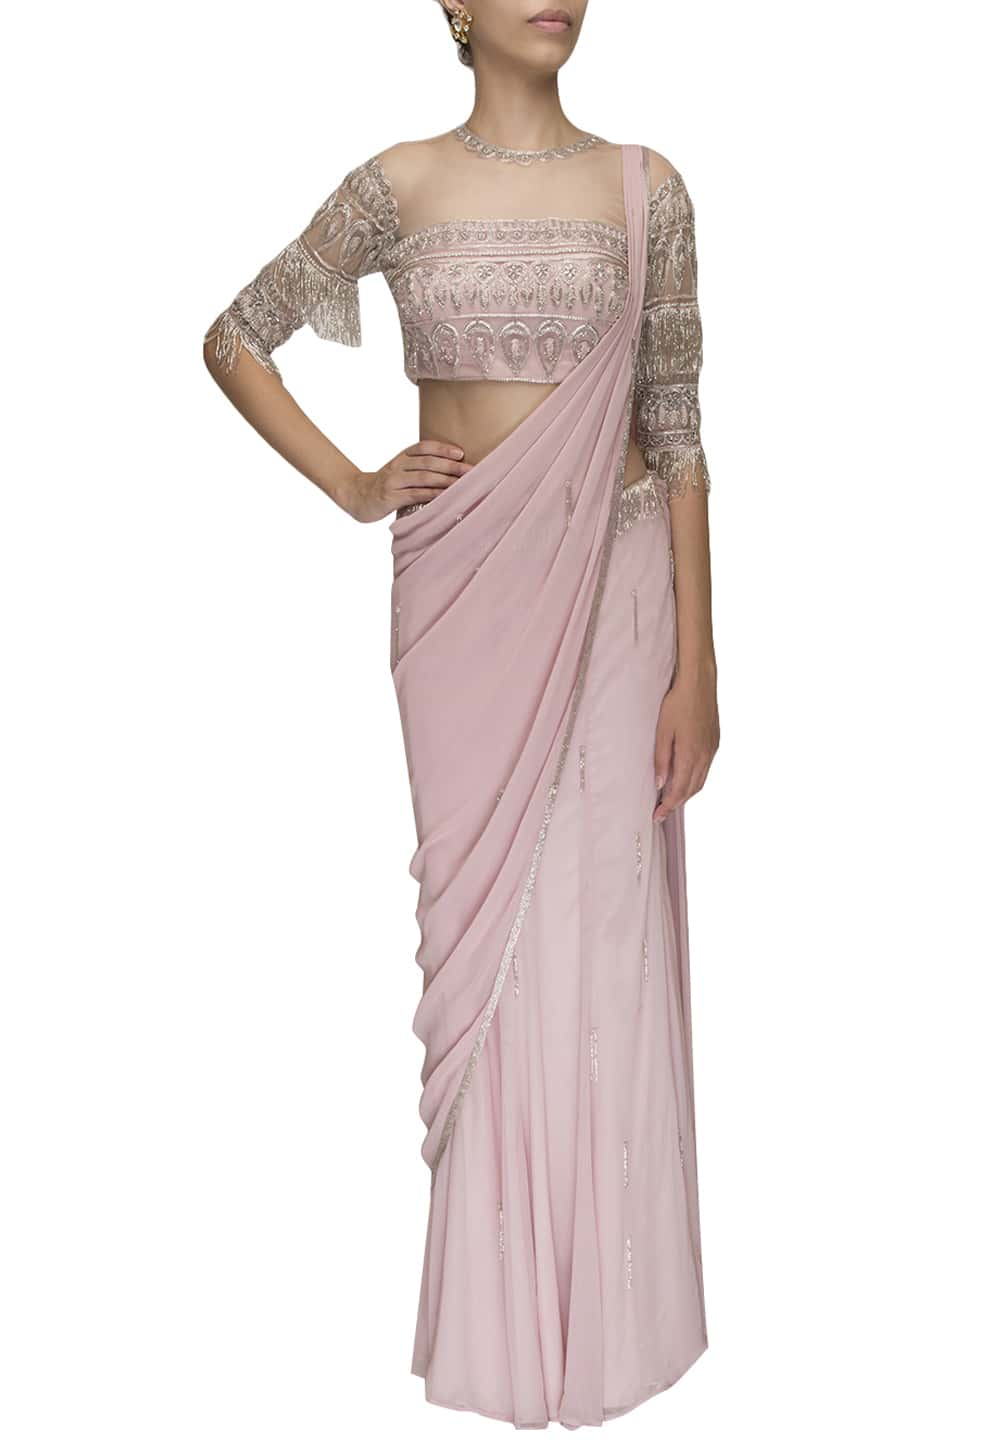 Baby Pink Draped Tassel Saree Available Only At Ibfw